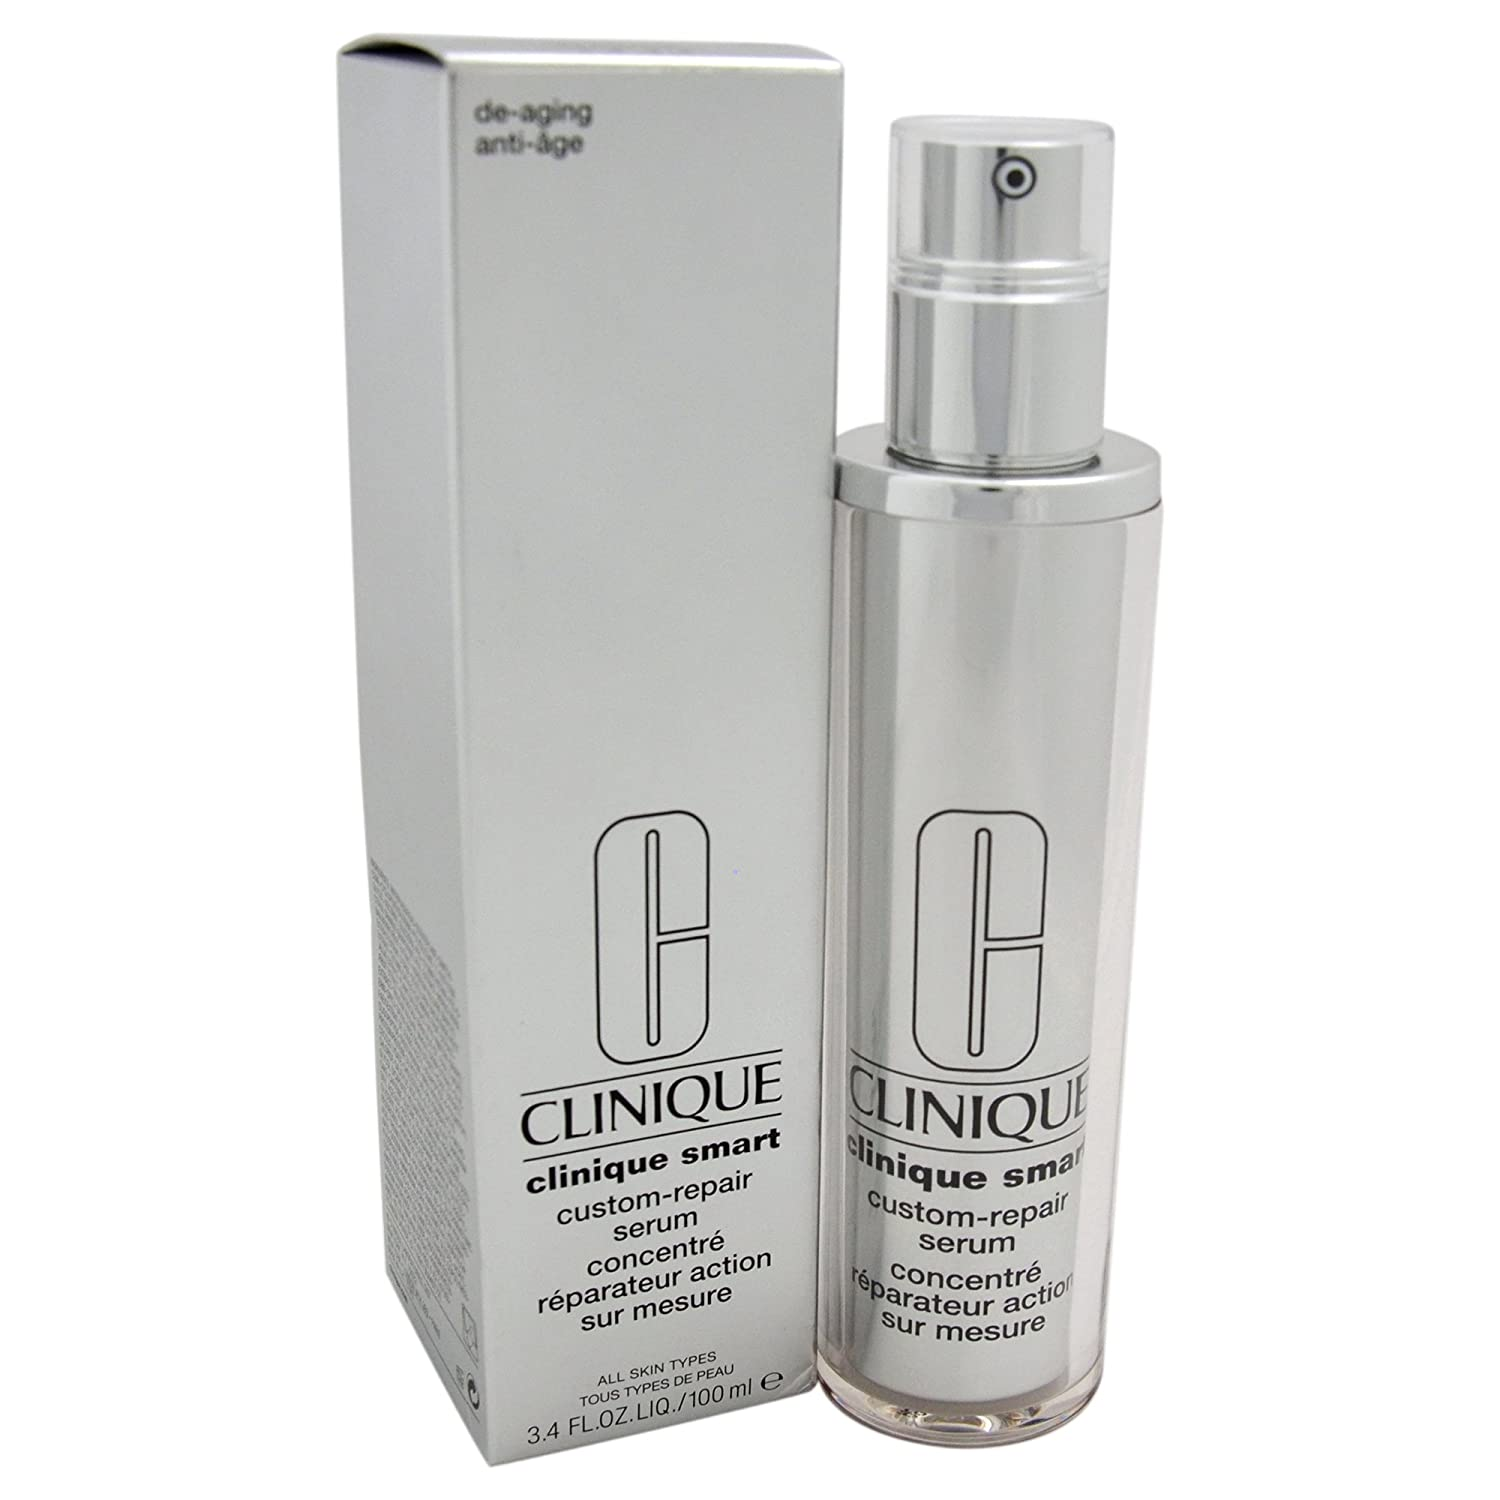 Clinique Unisex Smart Custom-Repair Serum, All Skin Types, 3.4 Ounce PerfumeWorldWide Inc. Drop Ship 0020714698928